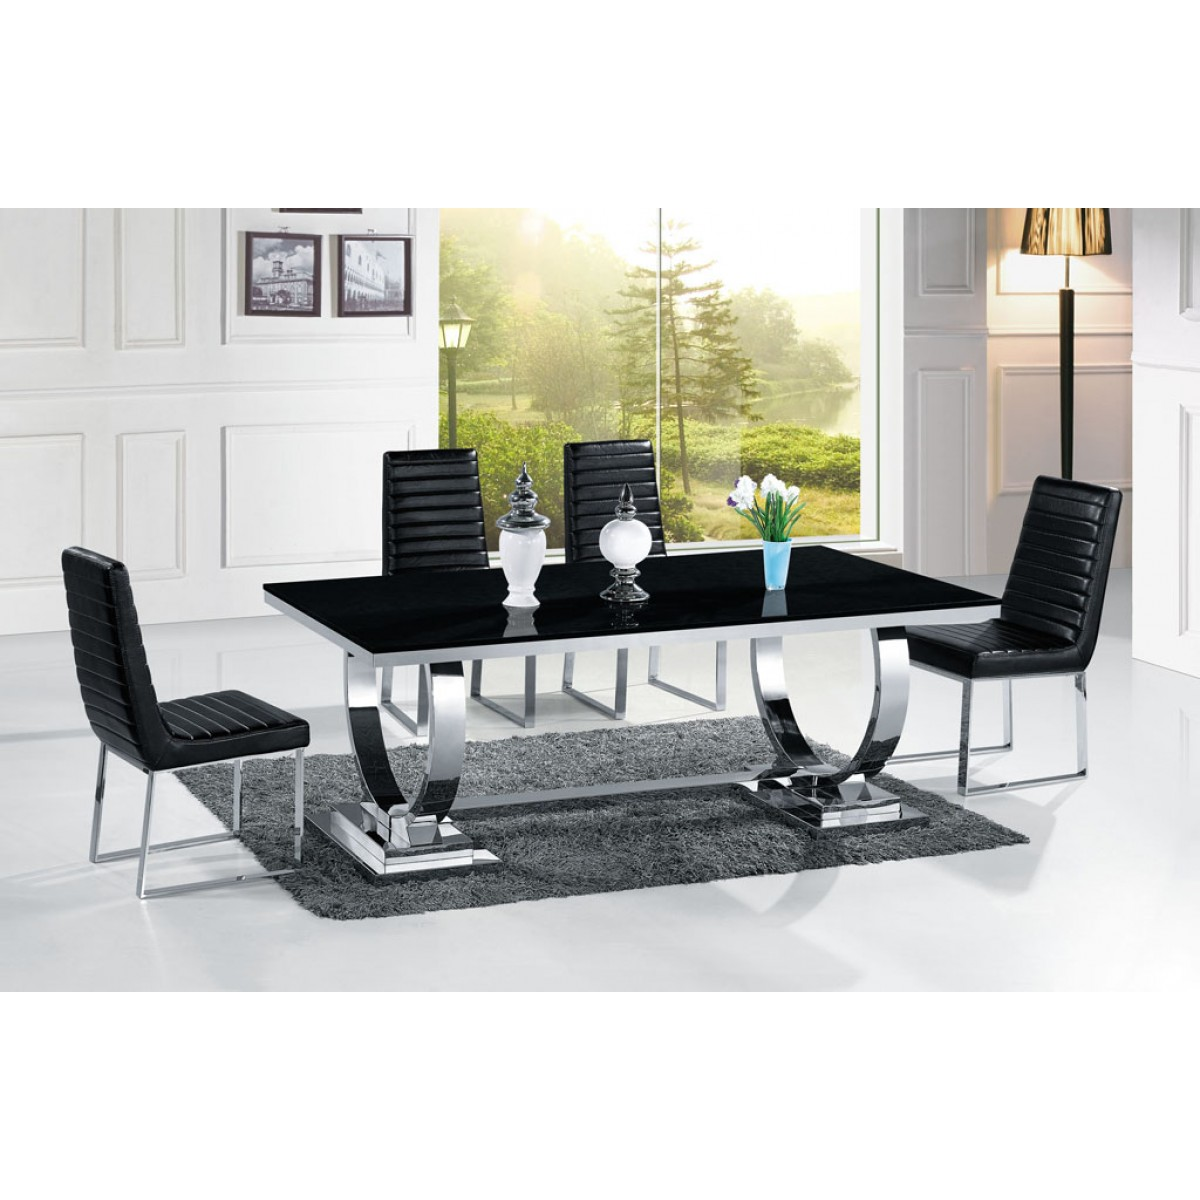 Table de salle manger en inox venezia mabre ou verre for Table salle a manger gain de place